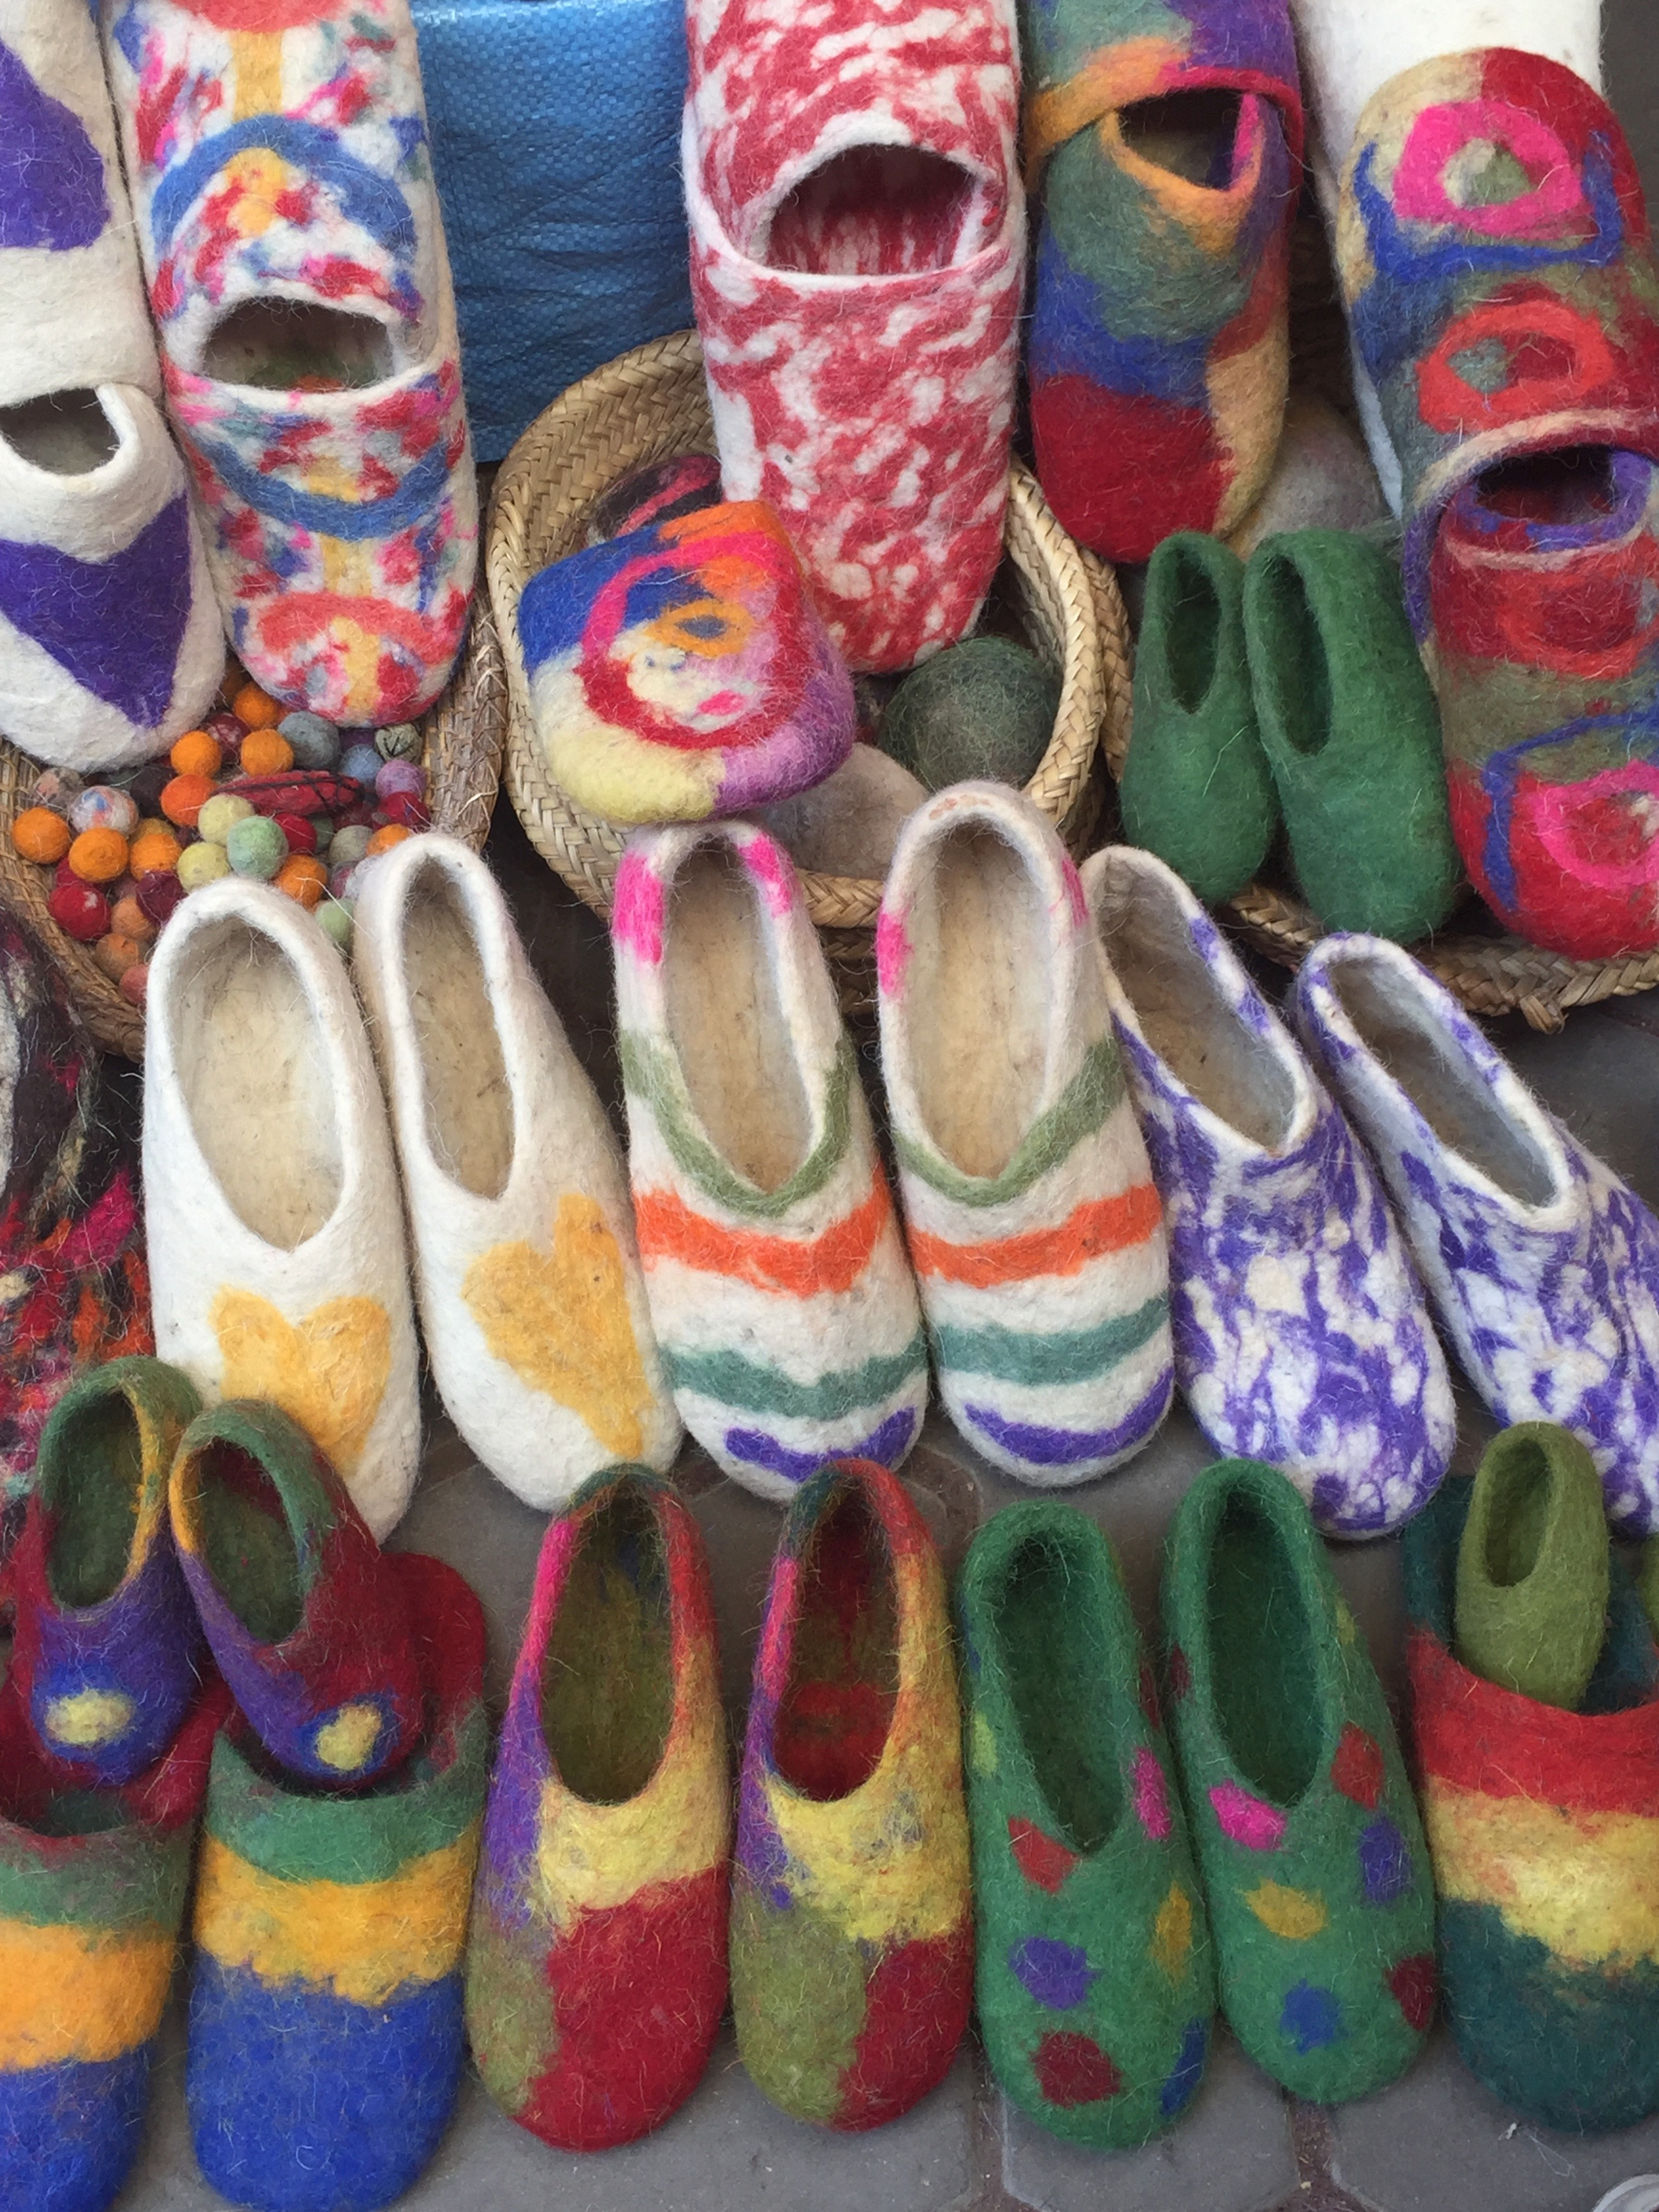 Modern felted slippers made of sheep's wool, in Fes medina souk.